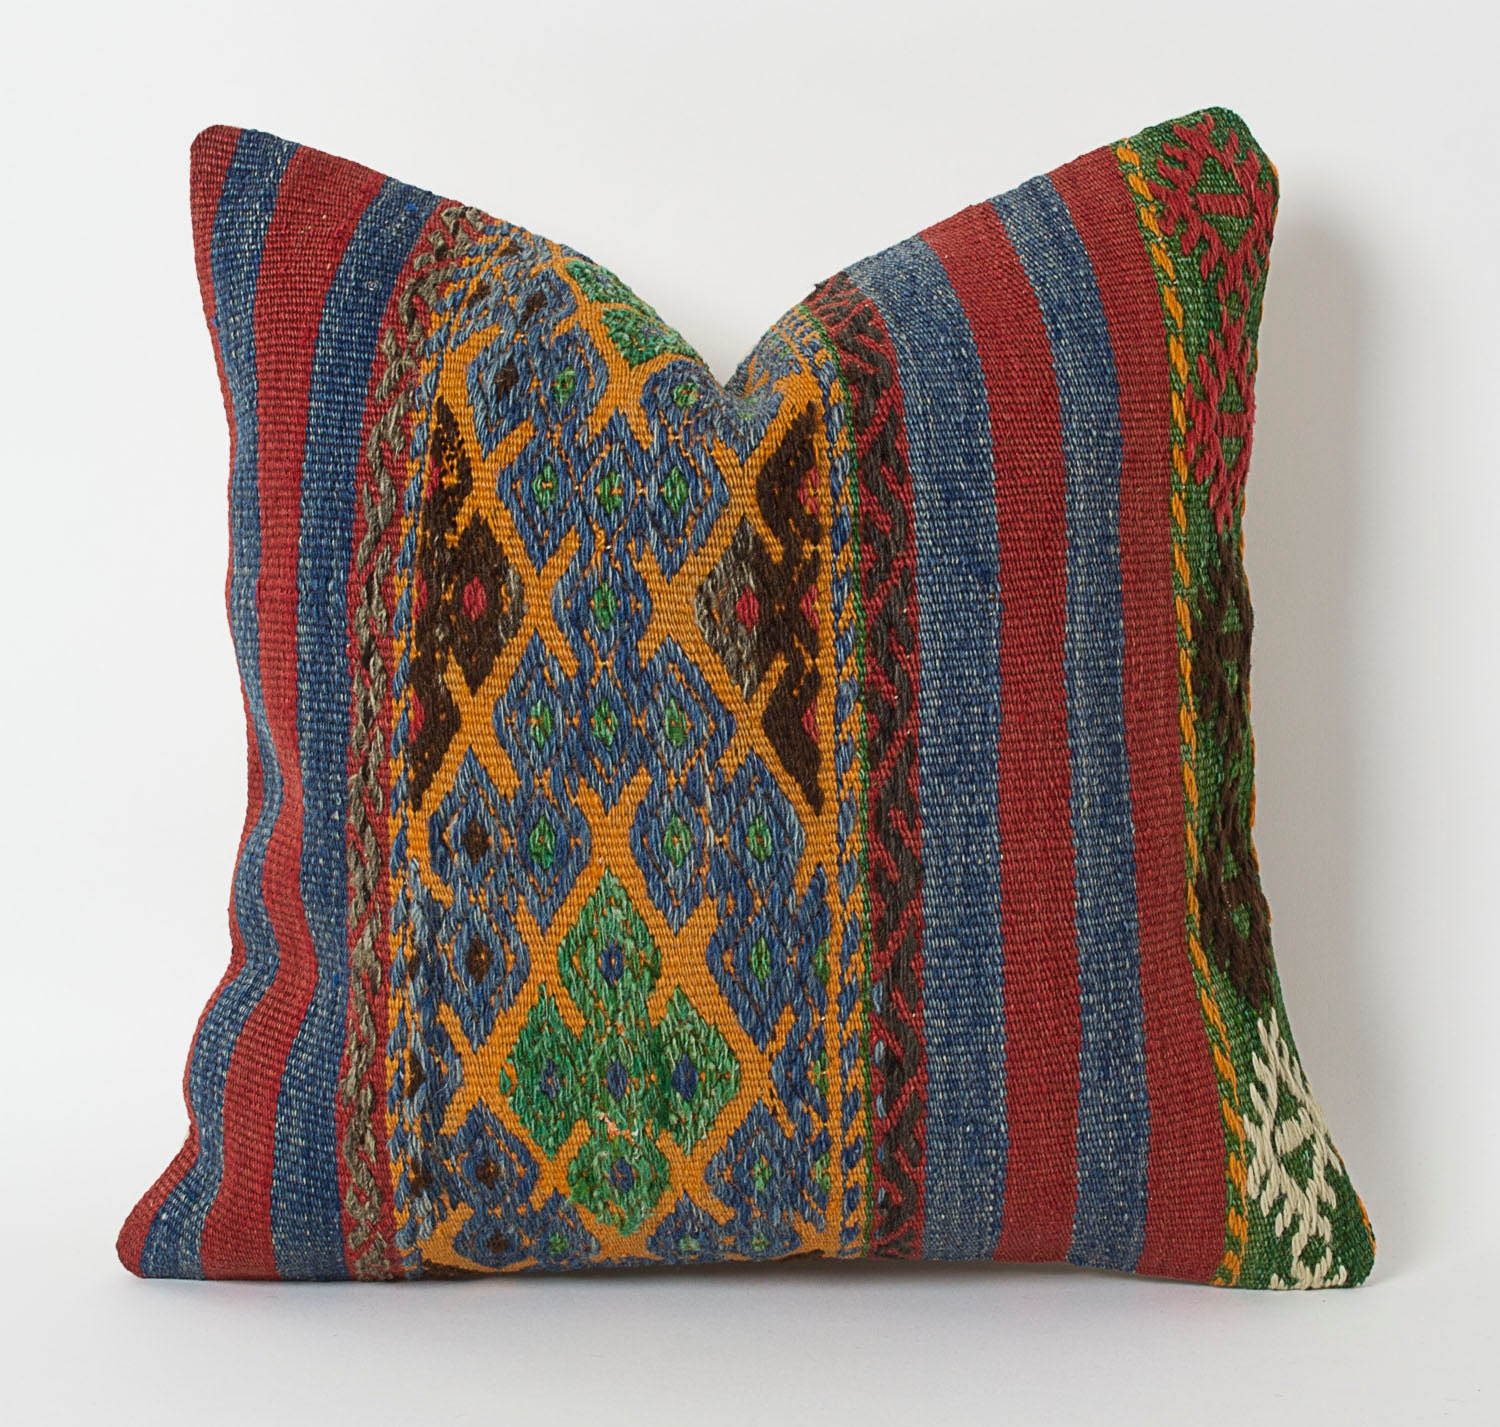 Turkish Kilim Throw Pillows : Turkish Kilim Pillow Covers Kilim Throw Pillows Bohemian